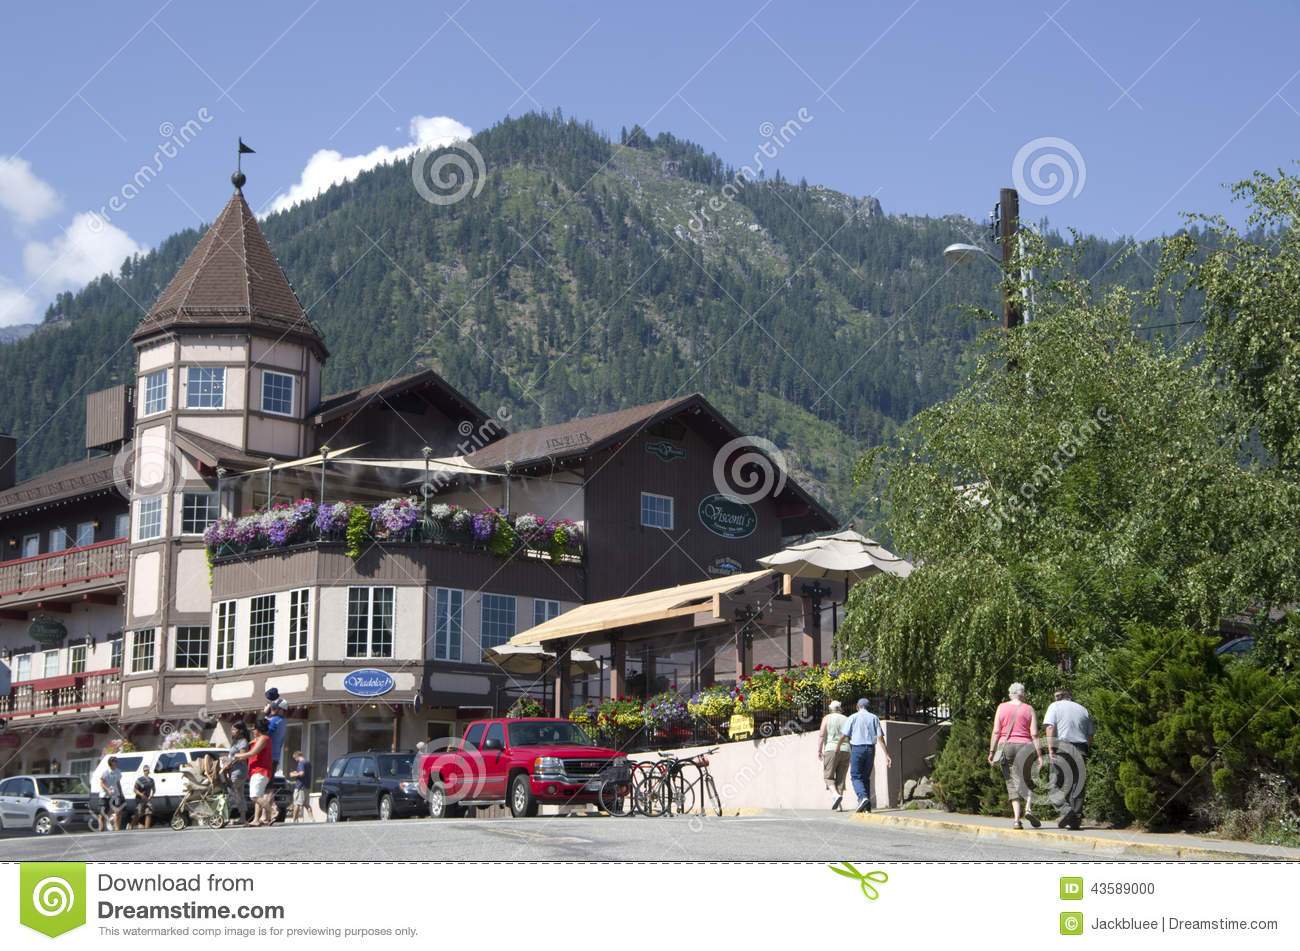 Leavenworth-Deutschstadt